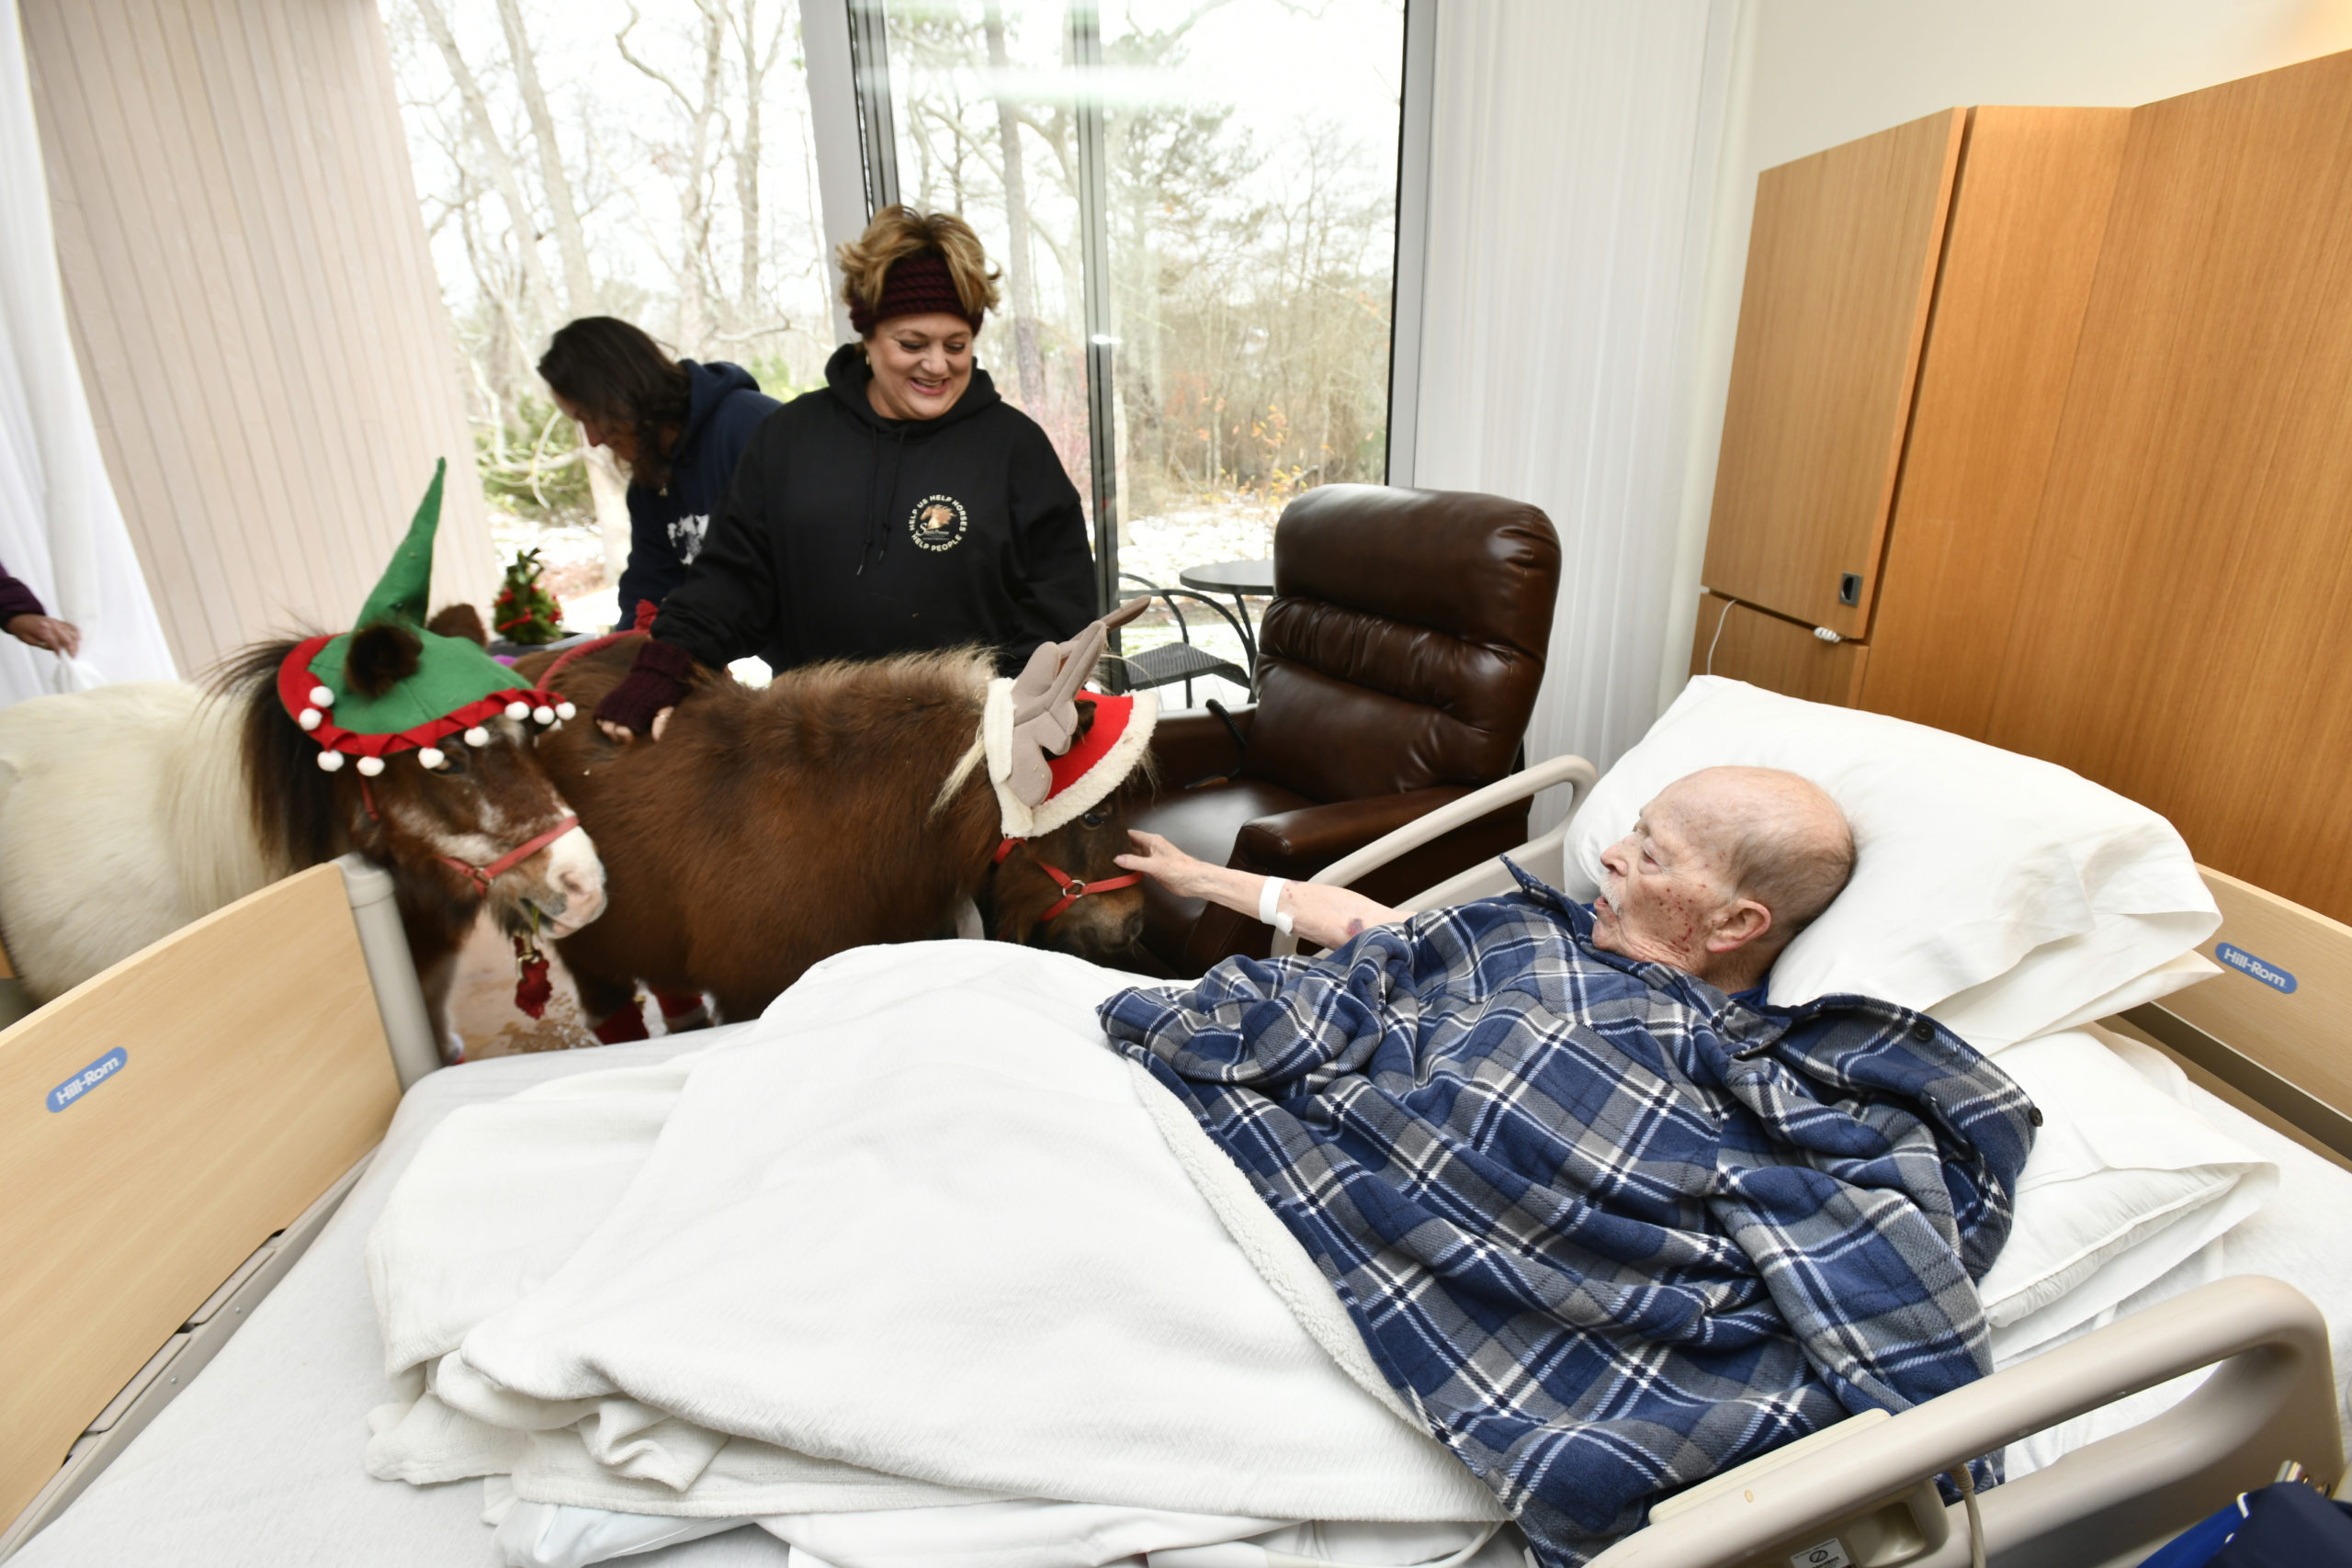 Daniel Byrne gets a visit from mini horses Sweetie and Christmas at the East End Hospice Kanas Center for Hospice Care on Wednesday, December 4.   DANA SHAW